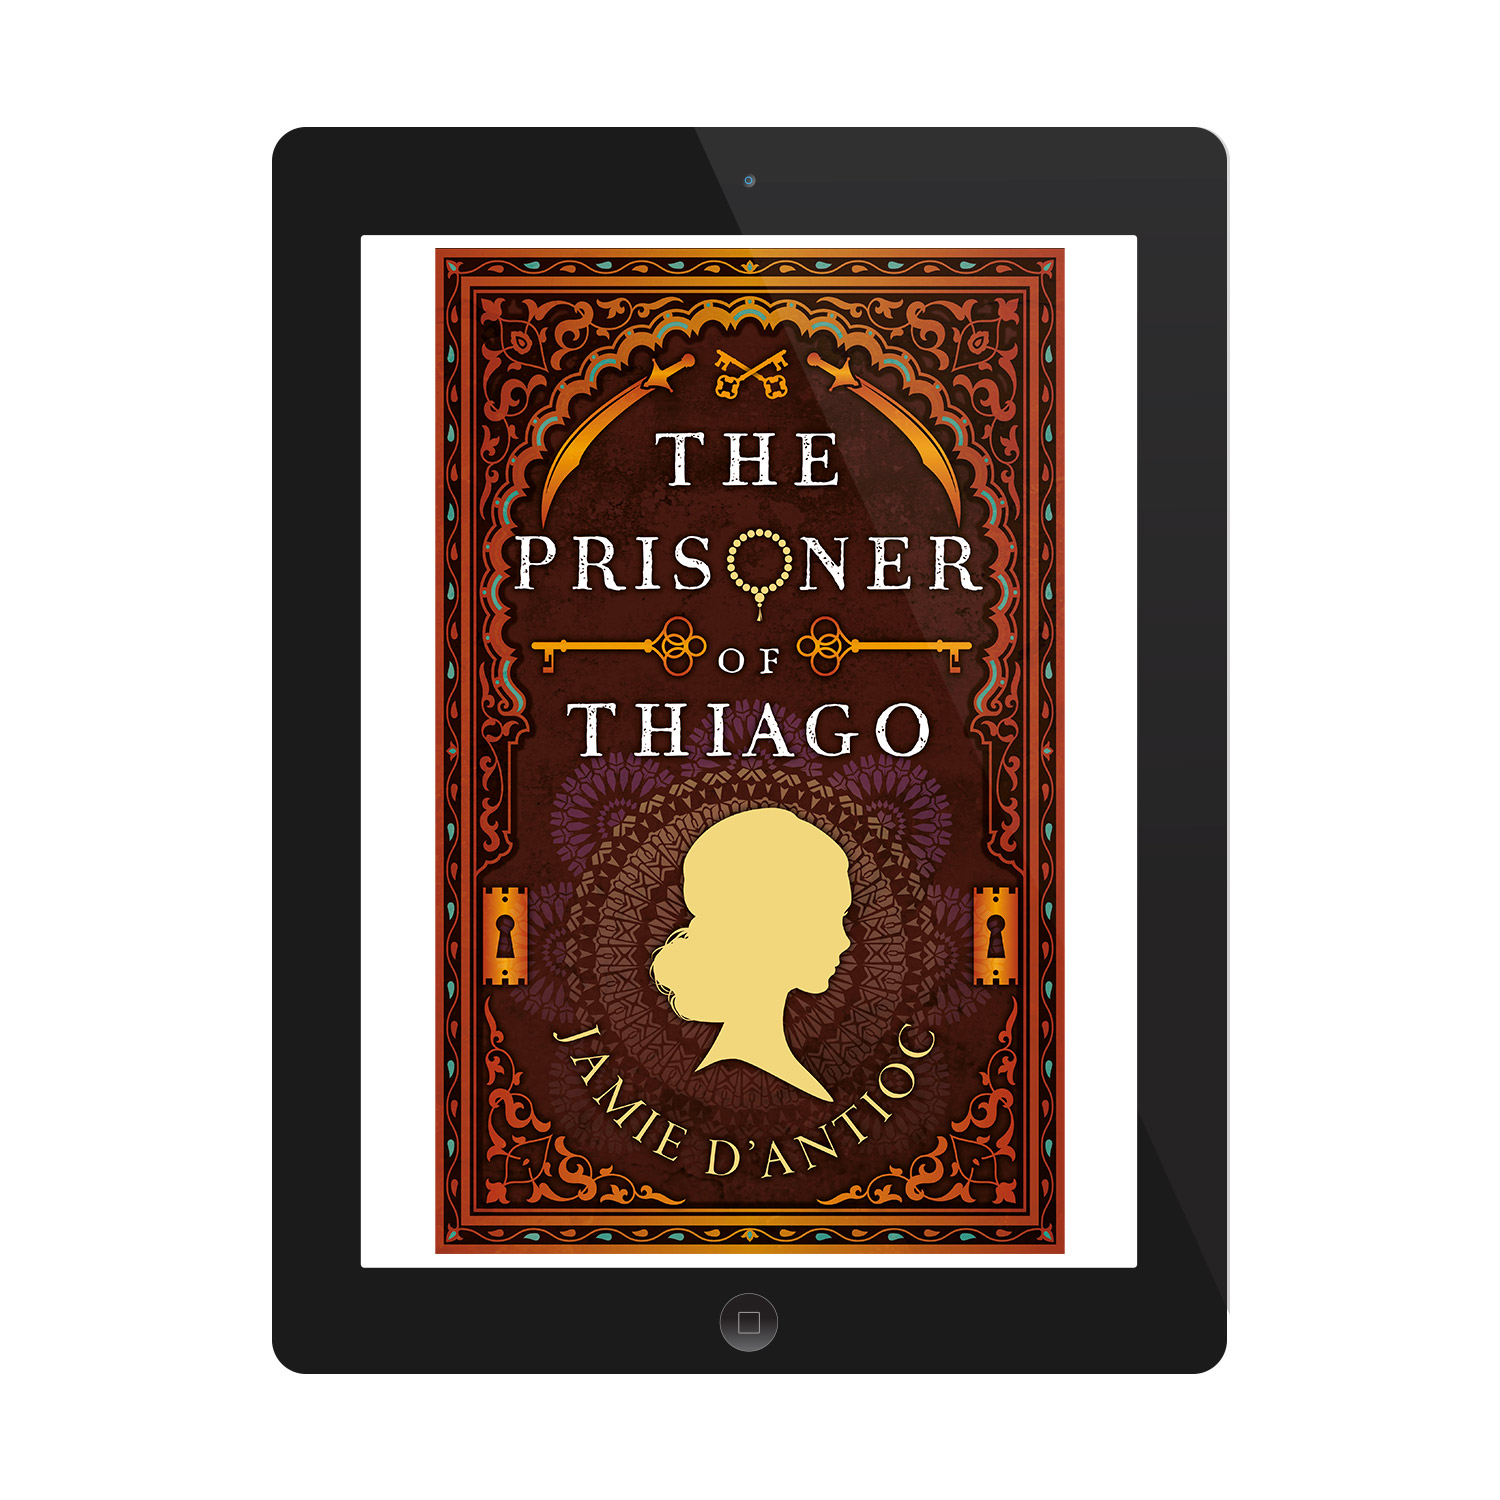 'The Prisoner of Thiago' is a thrilling historical novel, by Jamie D'Antioc. The book cover and interior were designed by Mark Thomas, of coverness.com. To find out more about my book design services, please visit www.coverness.com.